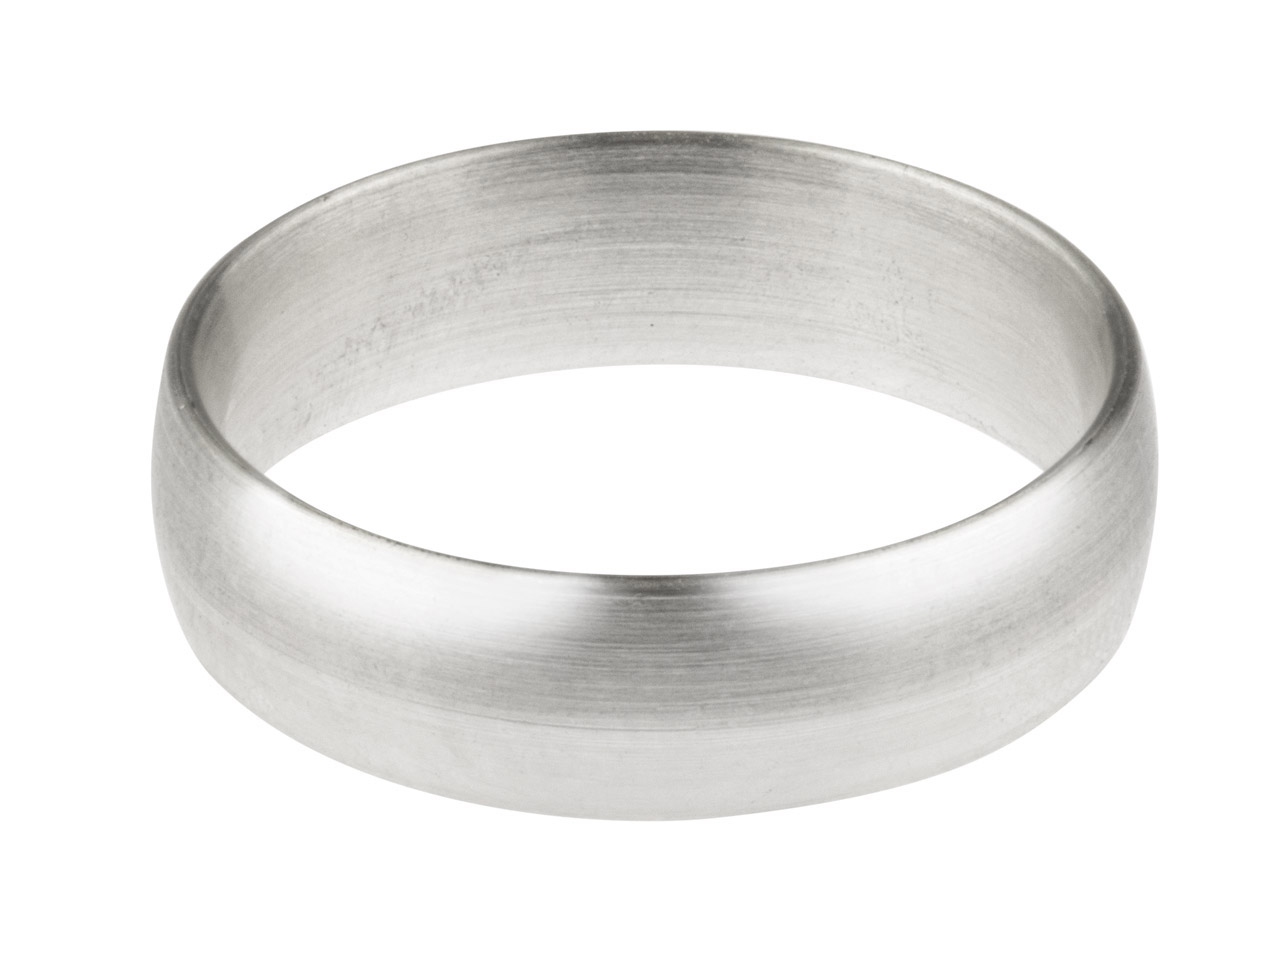 Platinum Blended Court Wedding Ring 6.0mm Q 1.3mm Wall Hallmarked Wall  Thickness 1.30mm